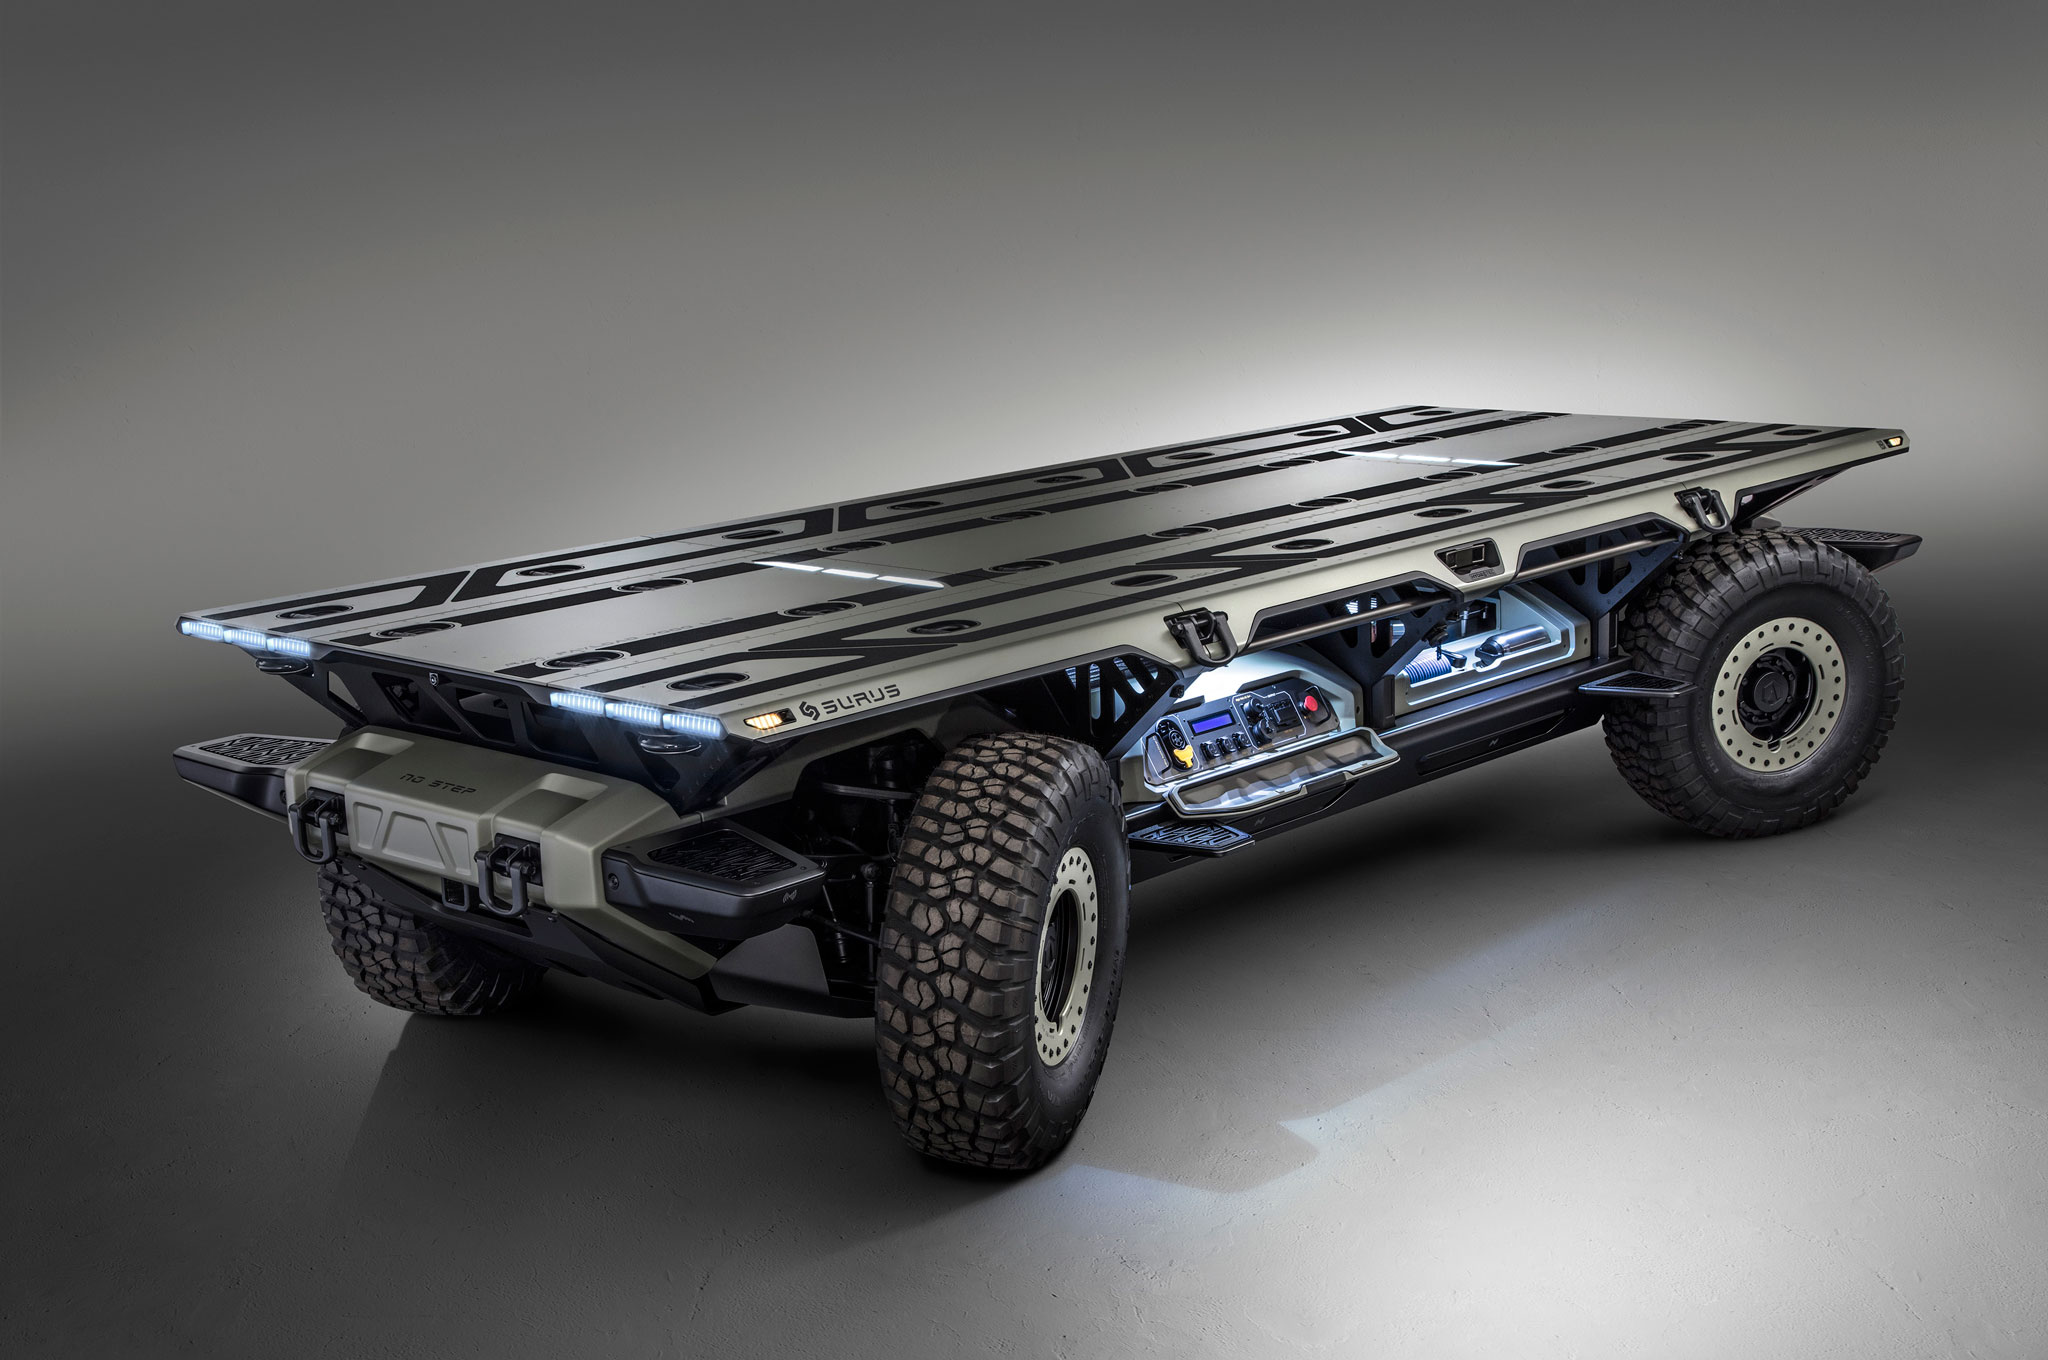 GM Reveals SURUS Autonomous, Fuel Cell Medium-Duty Truck Concept